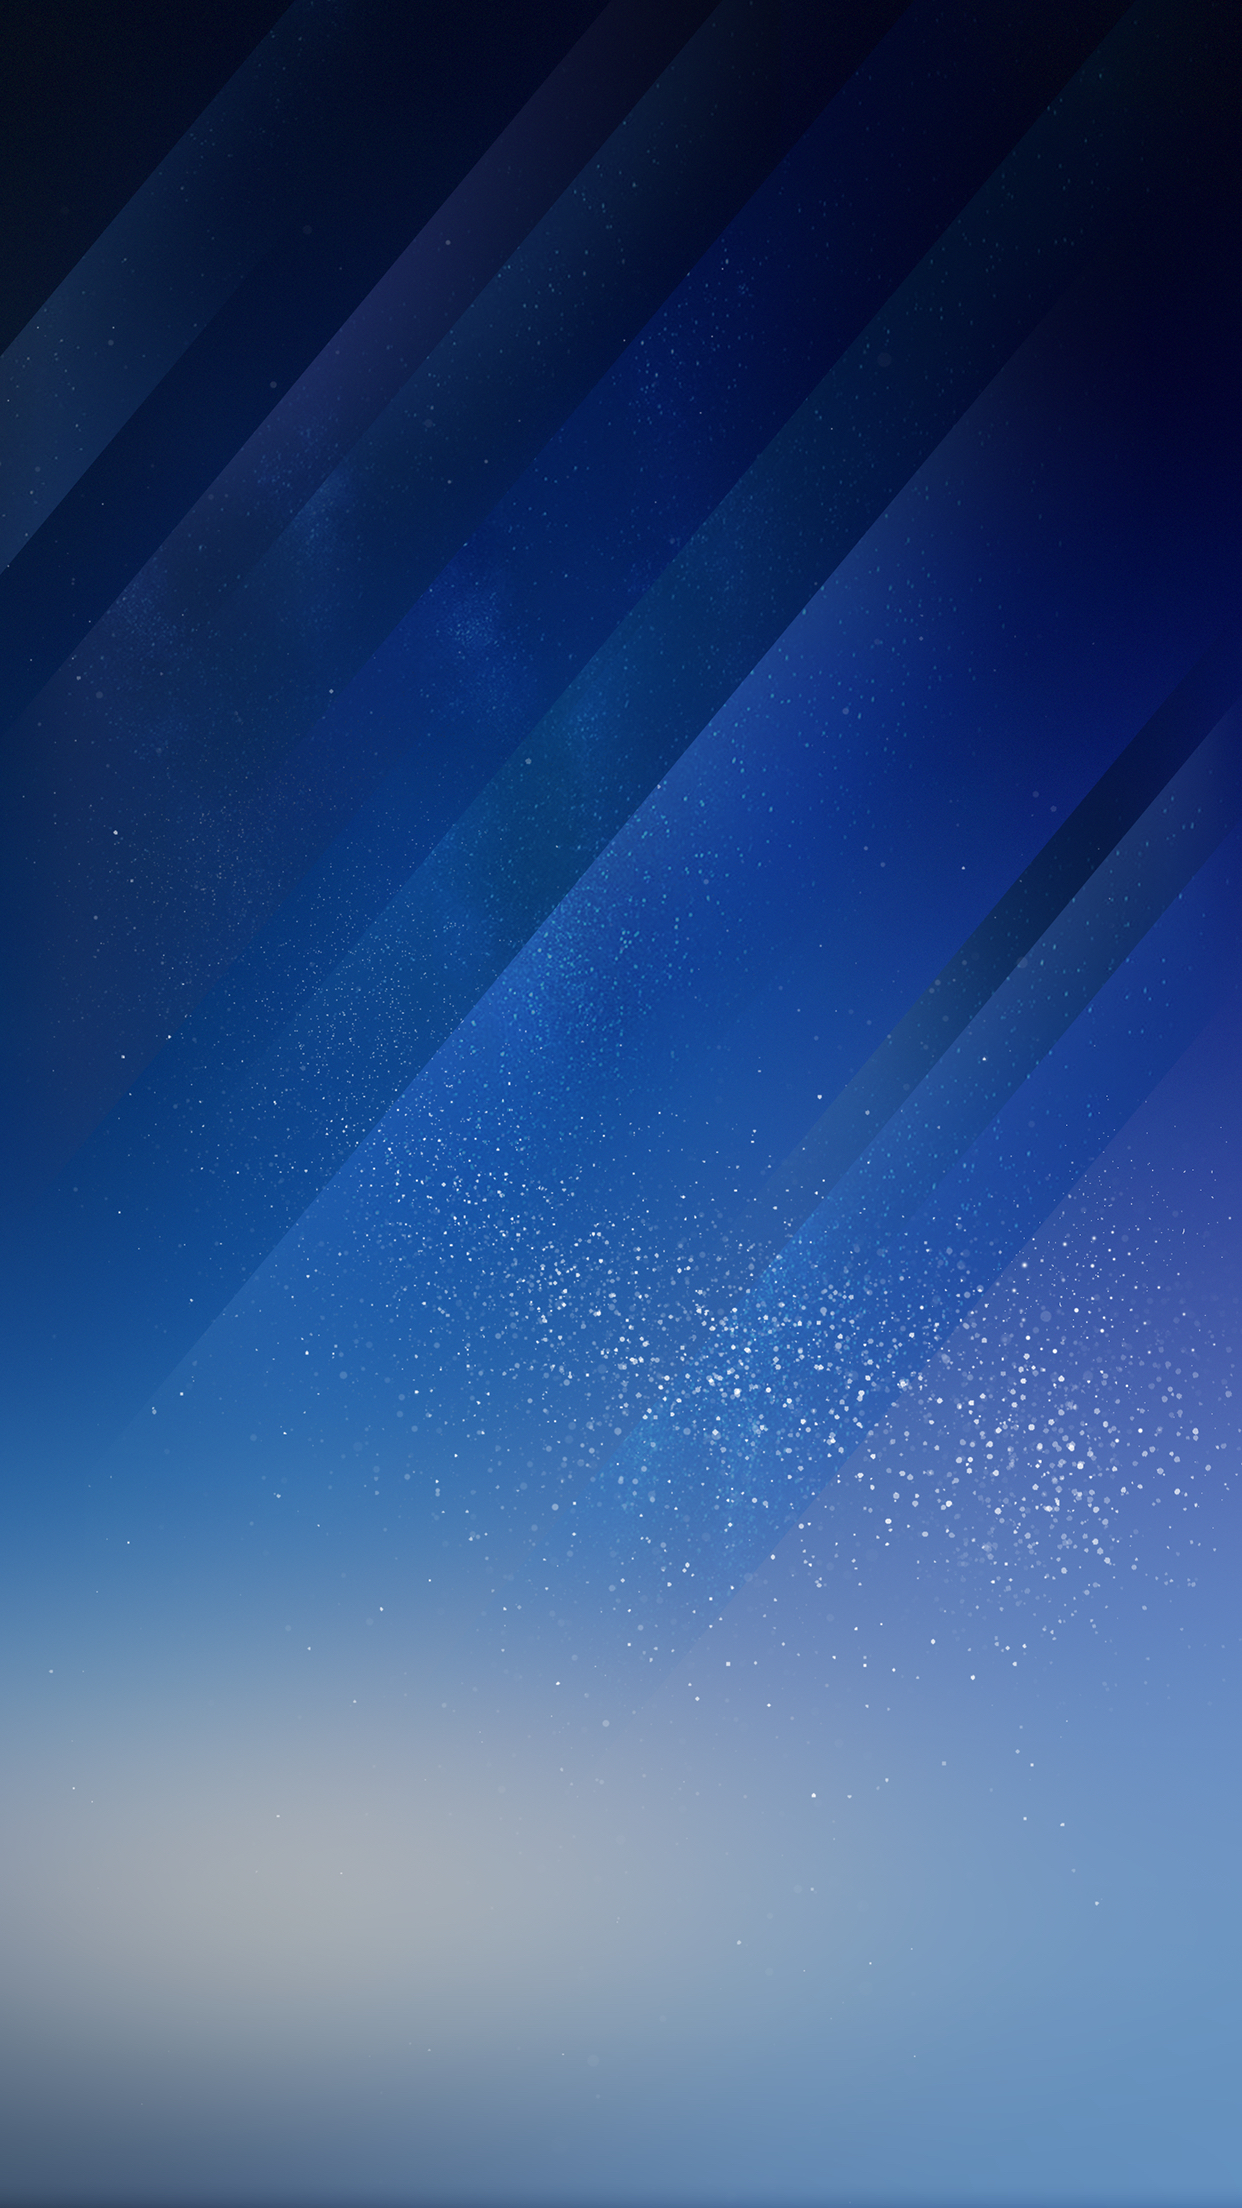 Samsung Galaxy S8 wallpaper pack for iPhone and desktop 1242x2208